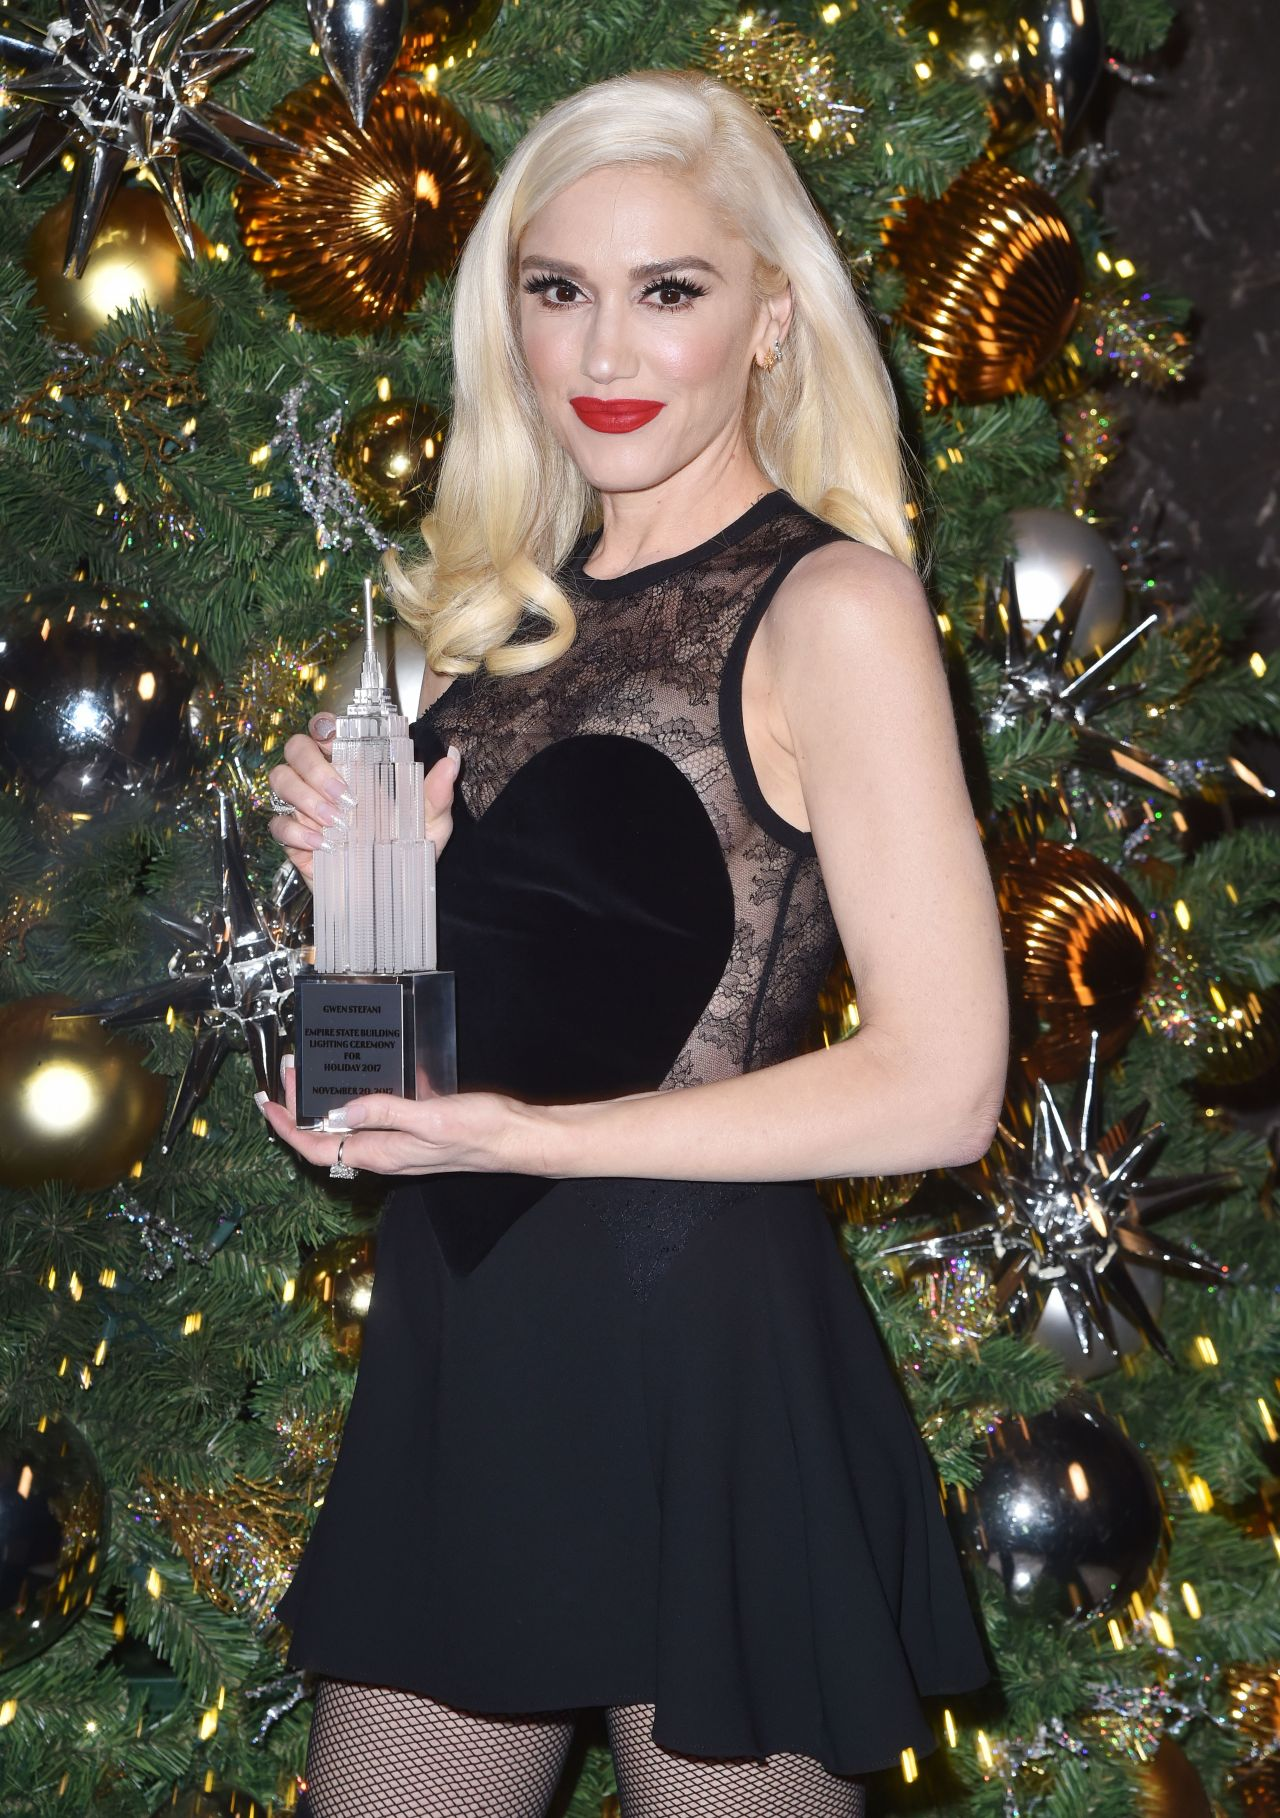 http://celebmafia.com/wp-content/uploads/2017/11/gwen-stefani-empire-state-building-lighting-ceremony-in-nyc-11-20-2017-2.jpg